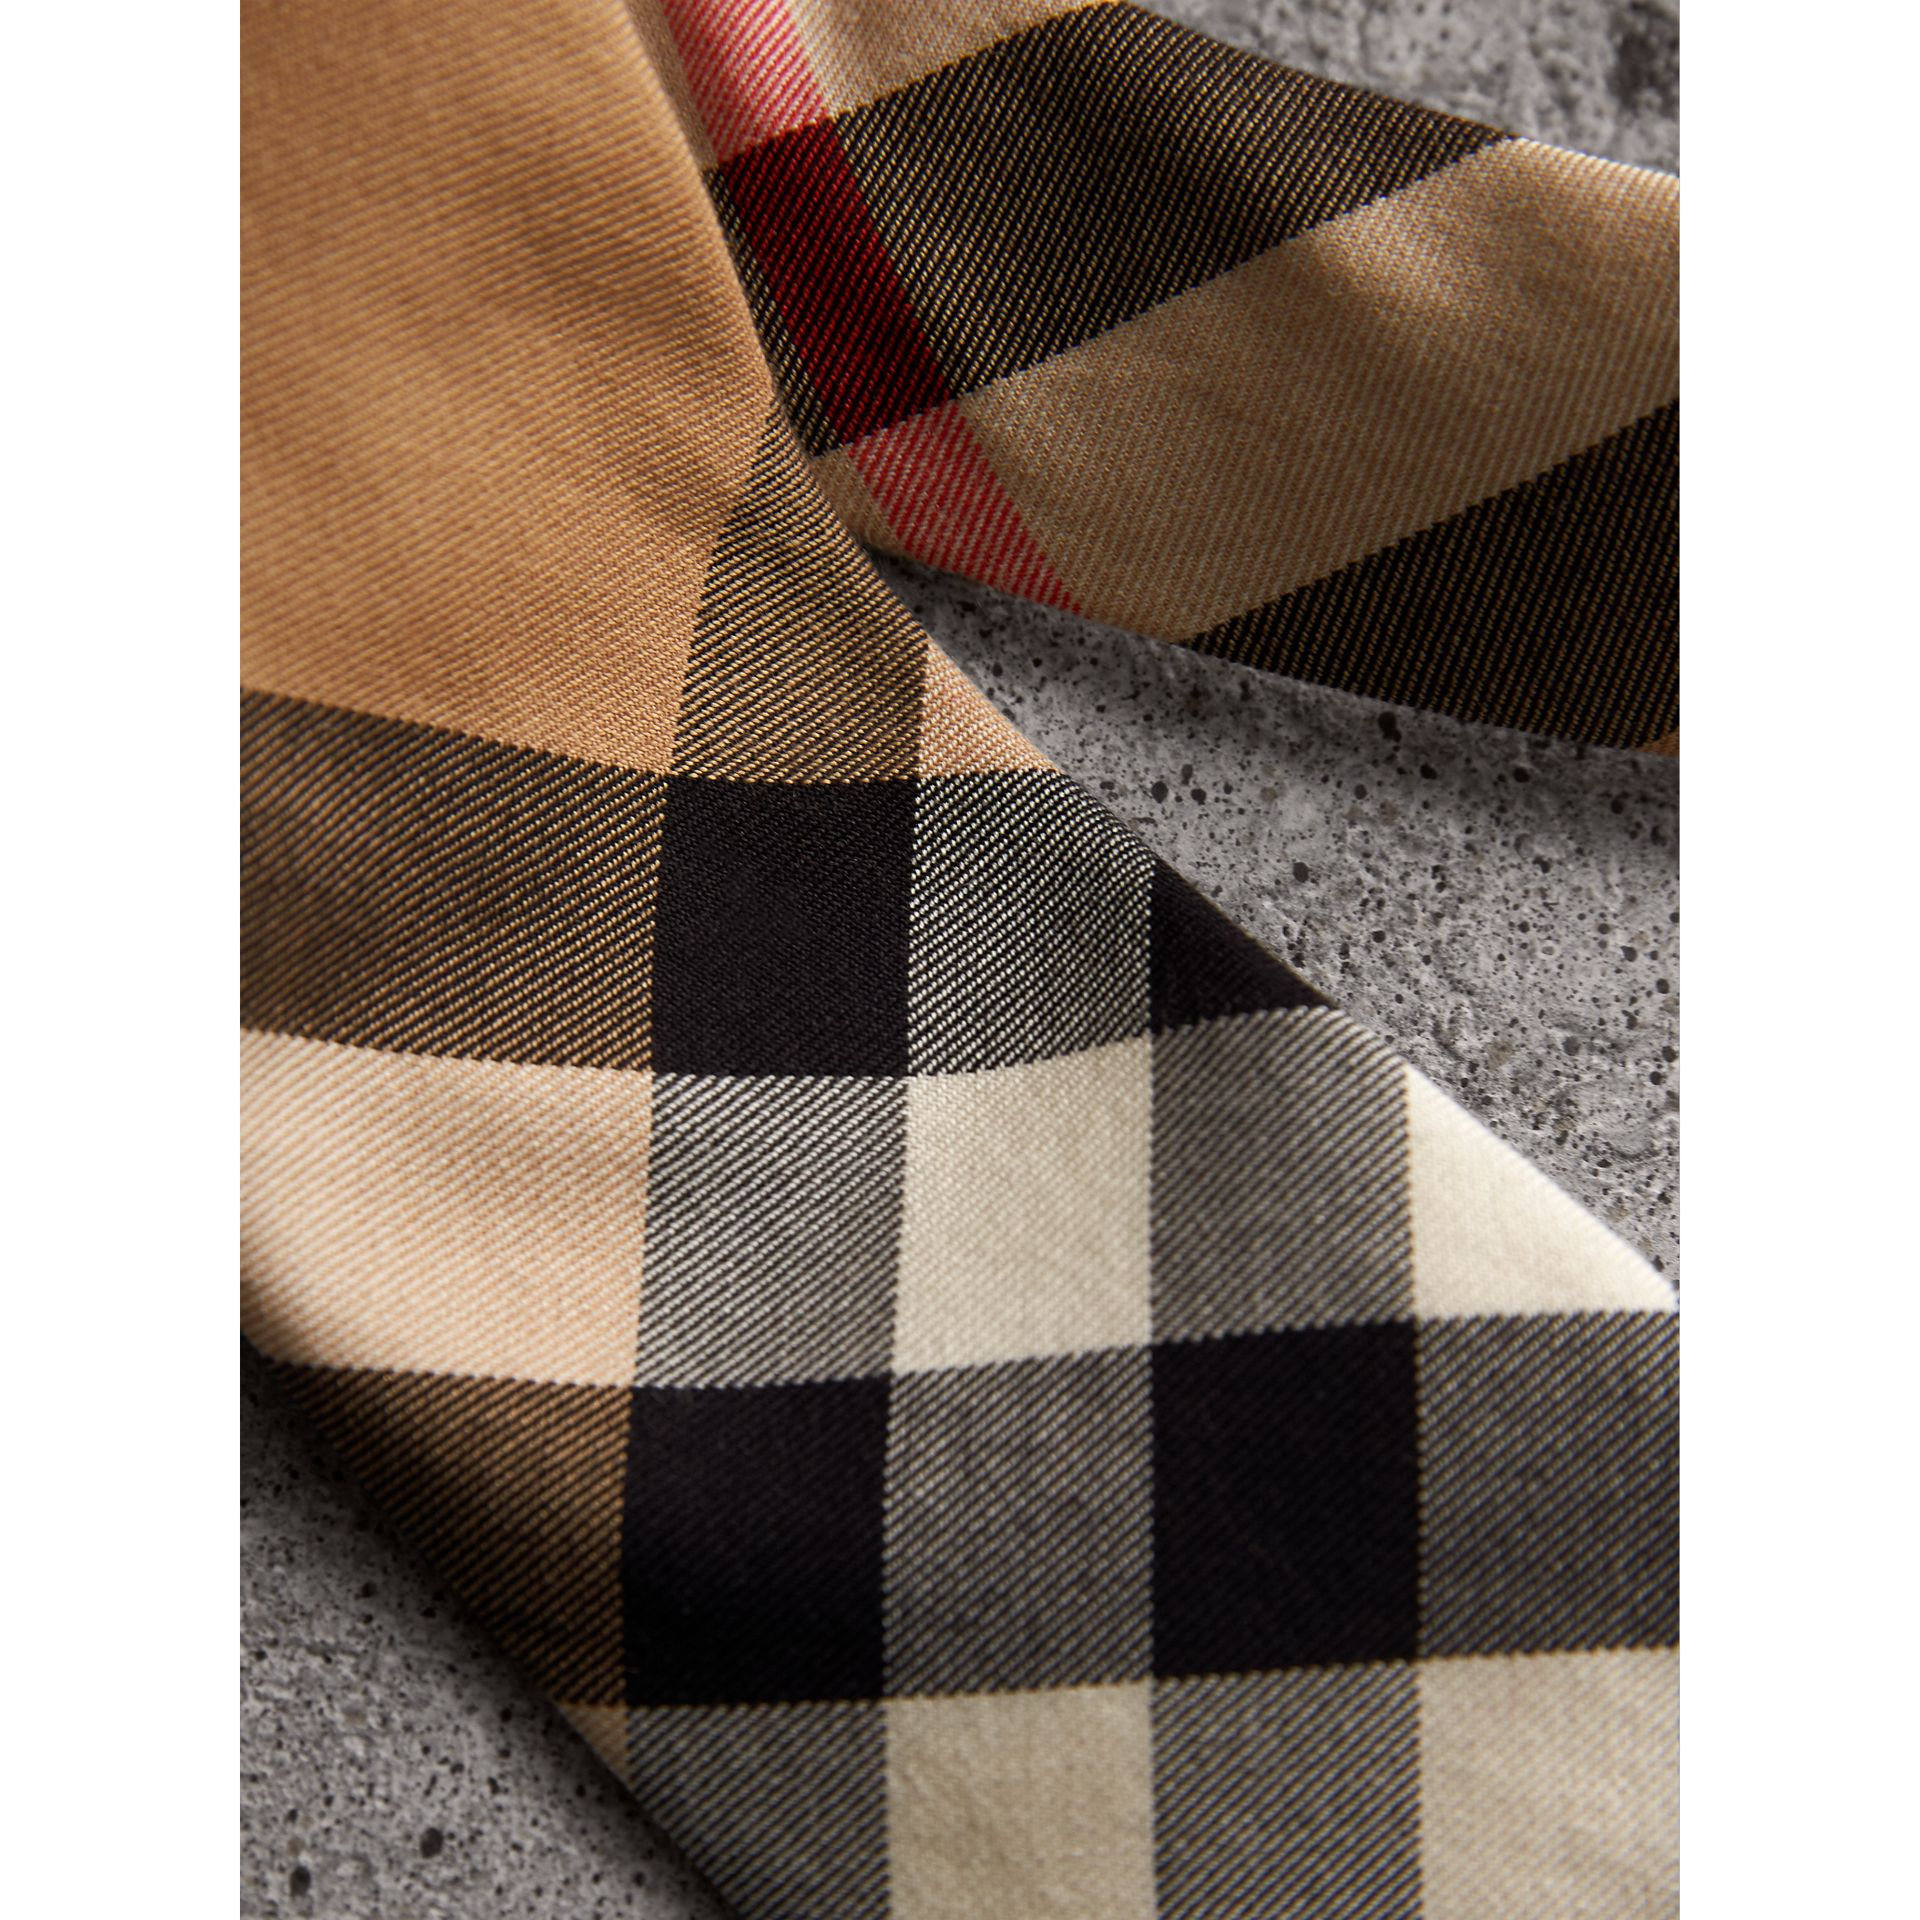 Modern Cut Check Cotton Cashmere Tie in Camel - Men | Burberry Canada - gallery image 1